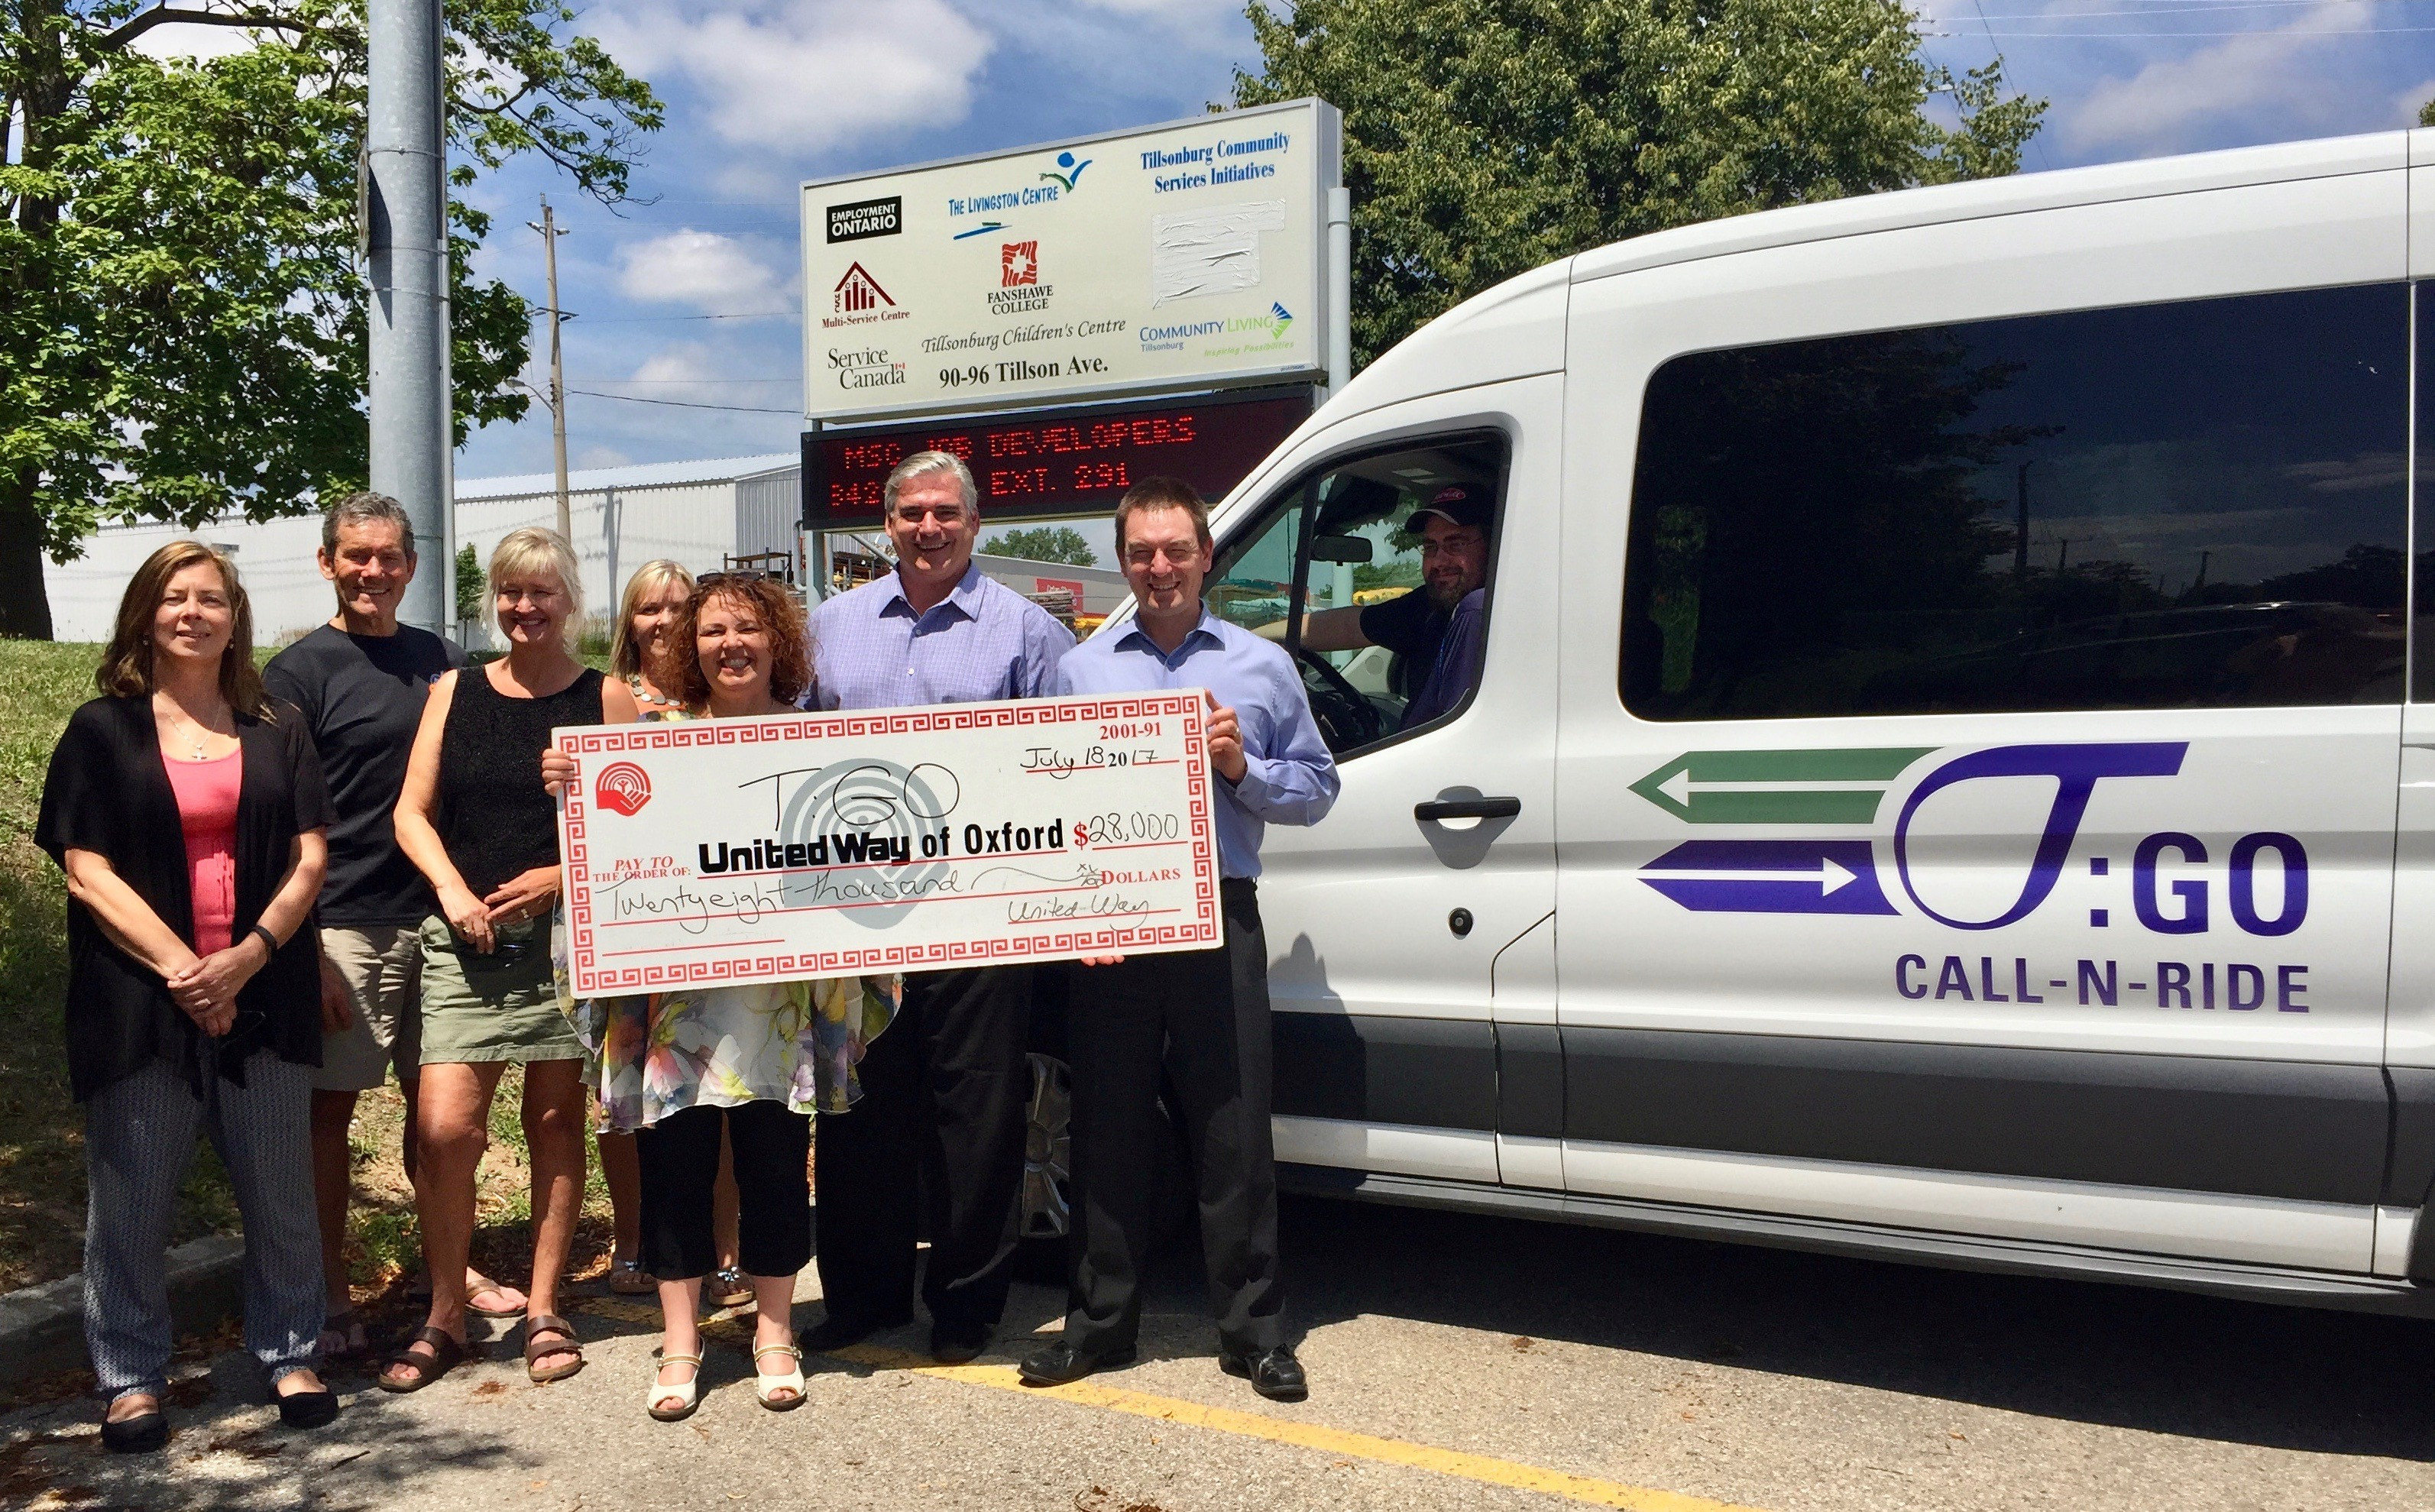 T:GO CALL-N-RIDE program receives $28,000 in funding from United Way Oxford Featured Image